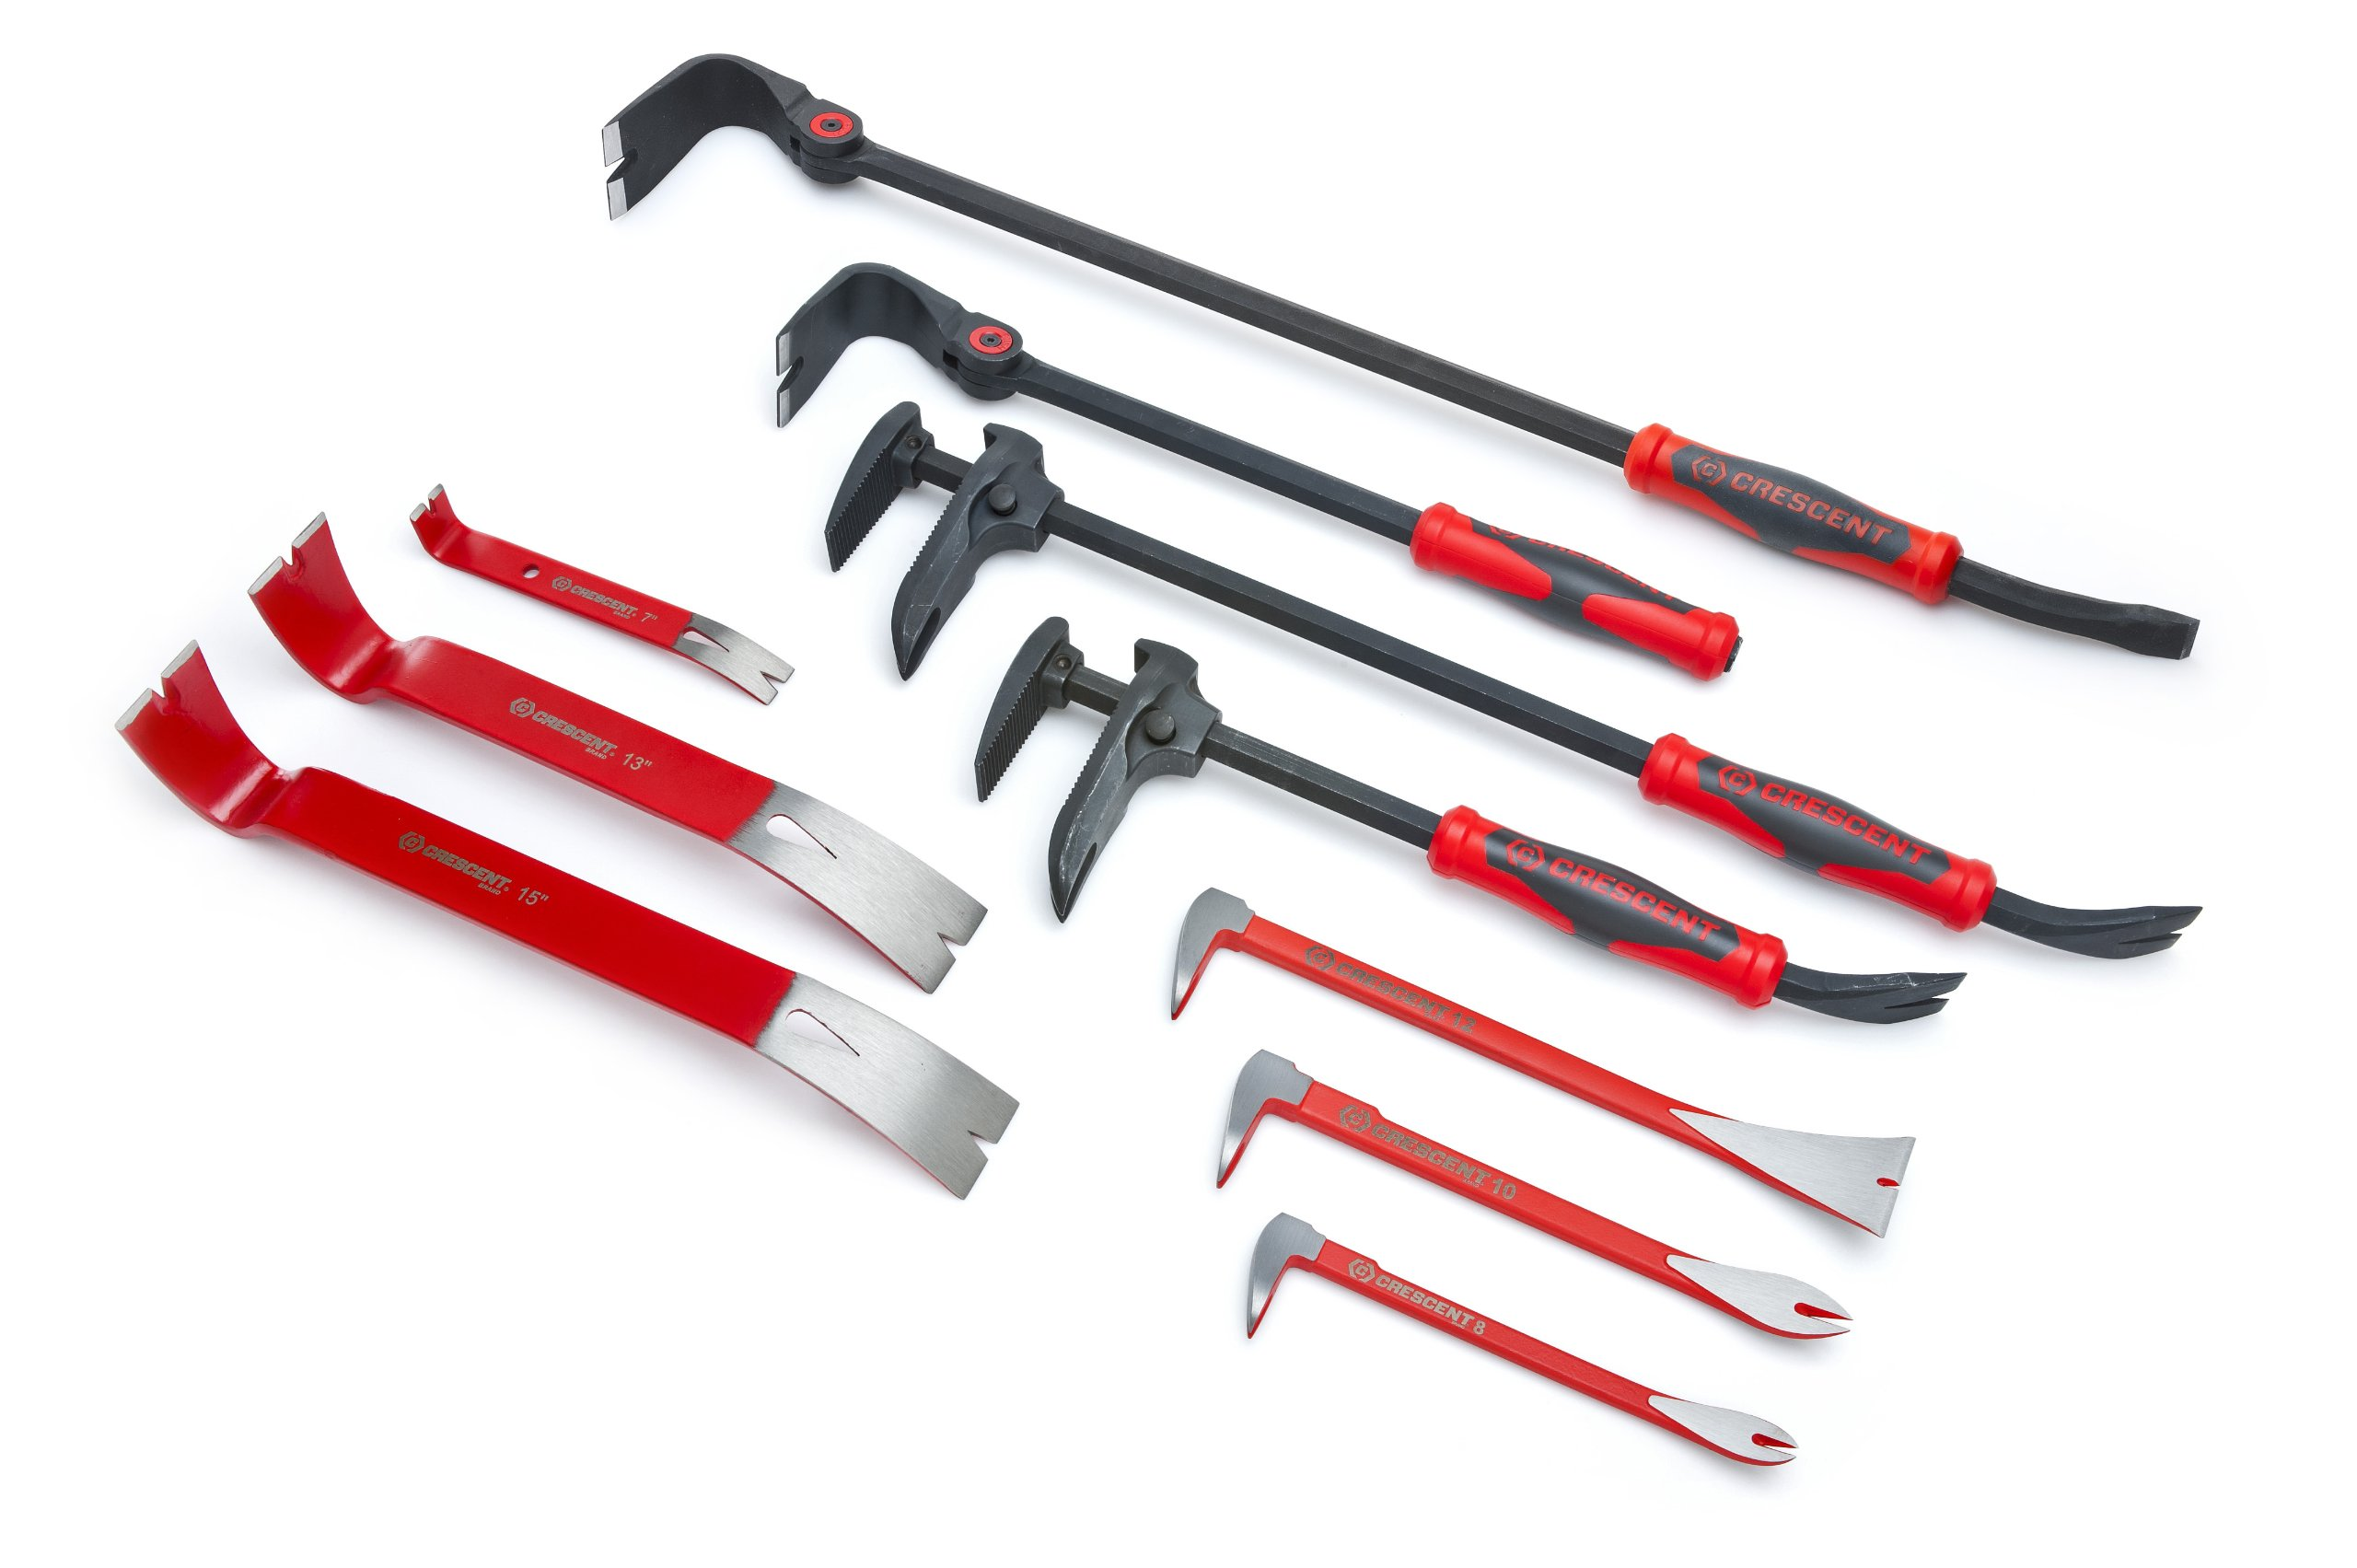 Crescent DB16 16-Inch Adjustable Pry Bar, Nail Puller, Red/Black by Apex Tool Group (Image #10)